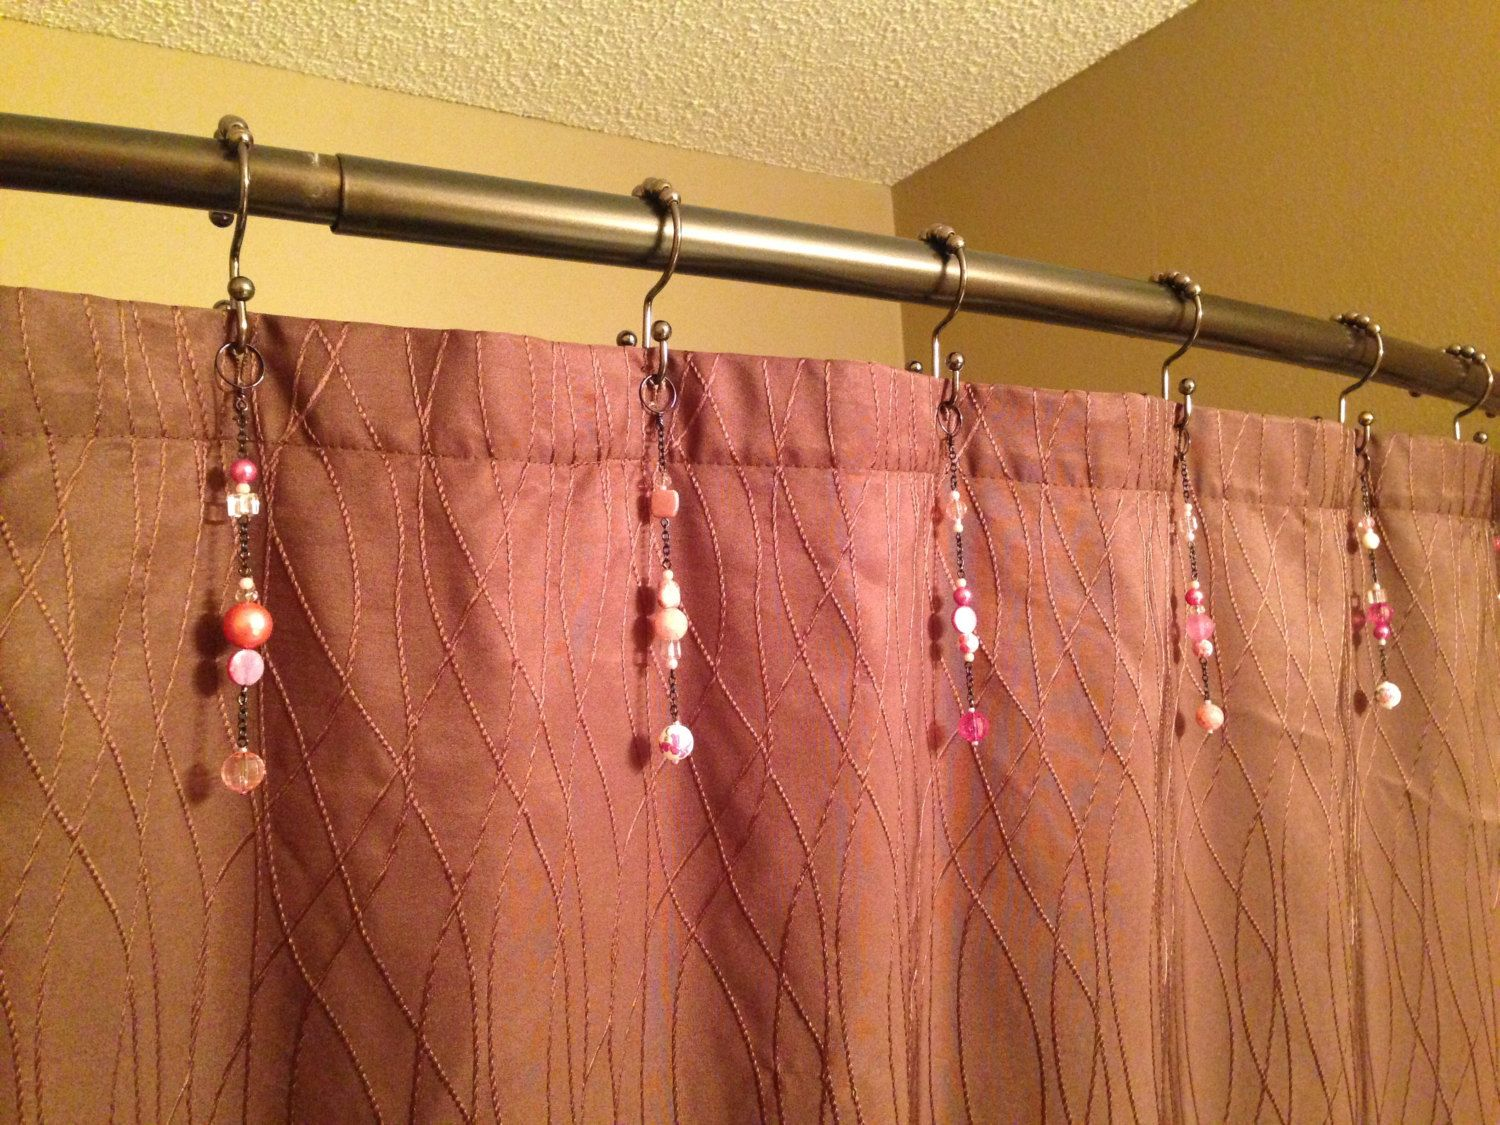 Pink Shower Curtain Hook Decoration With Black Chain For The Bathroom. Over  5 Inches Long